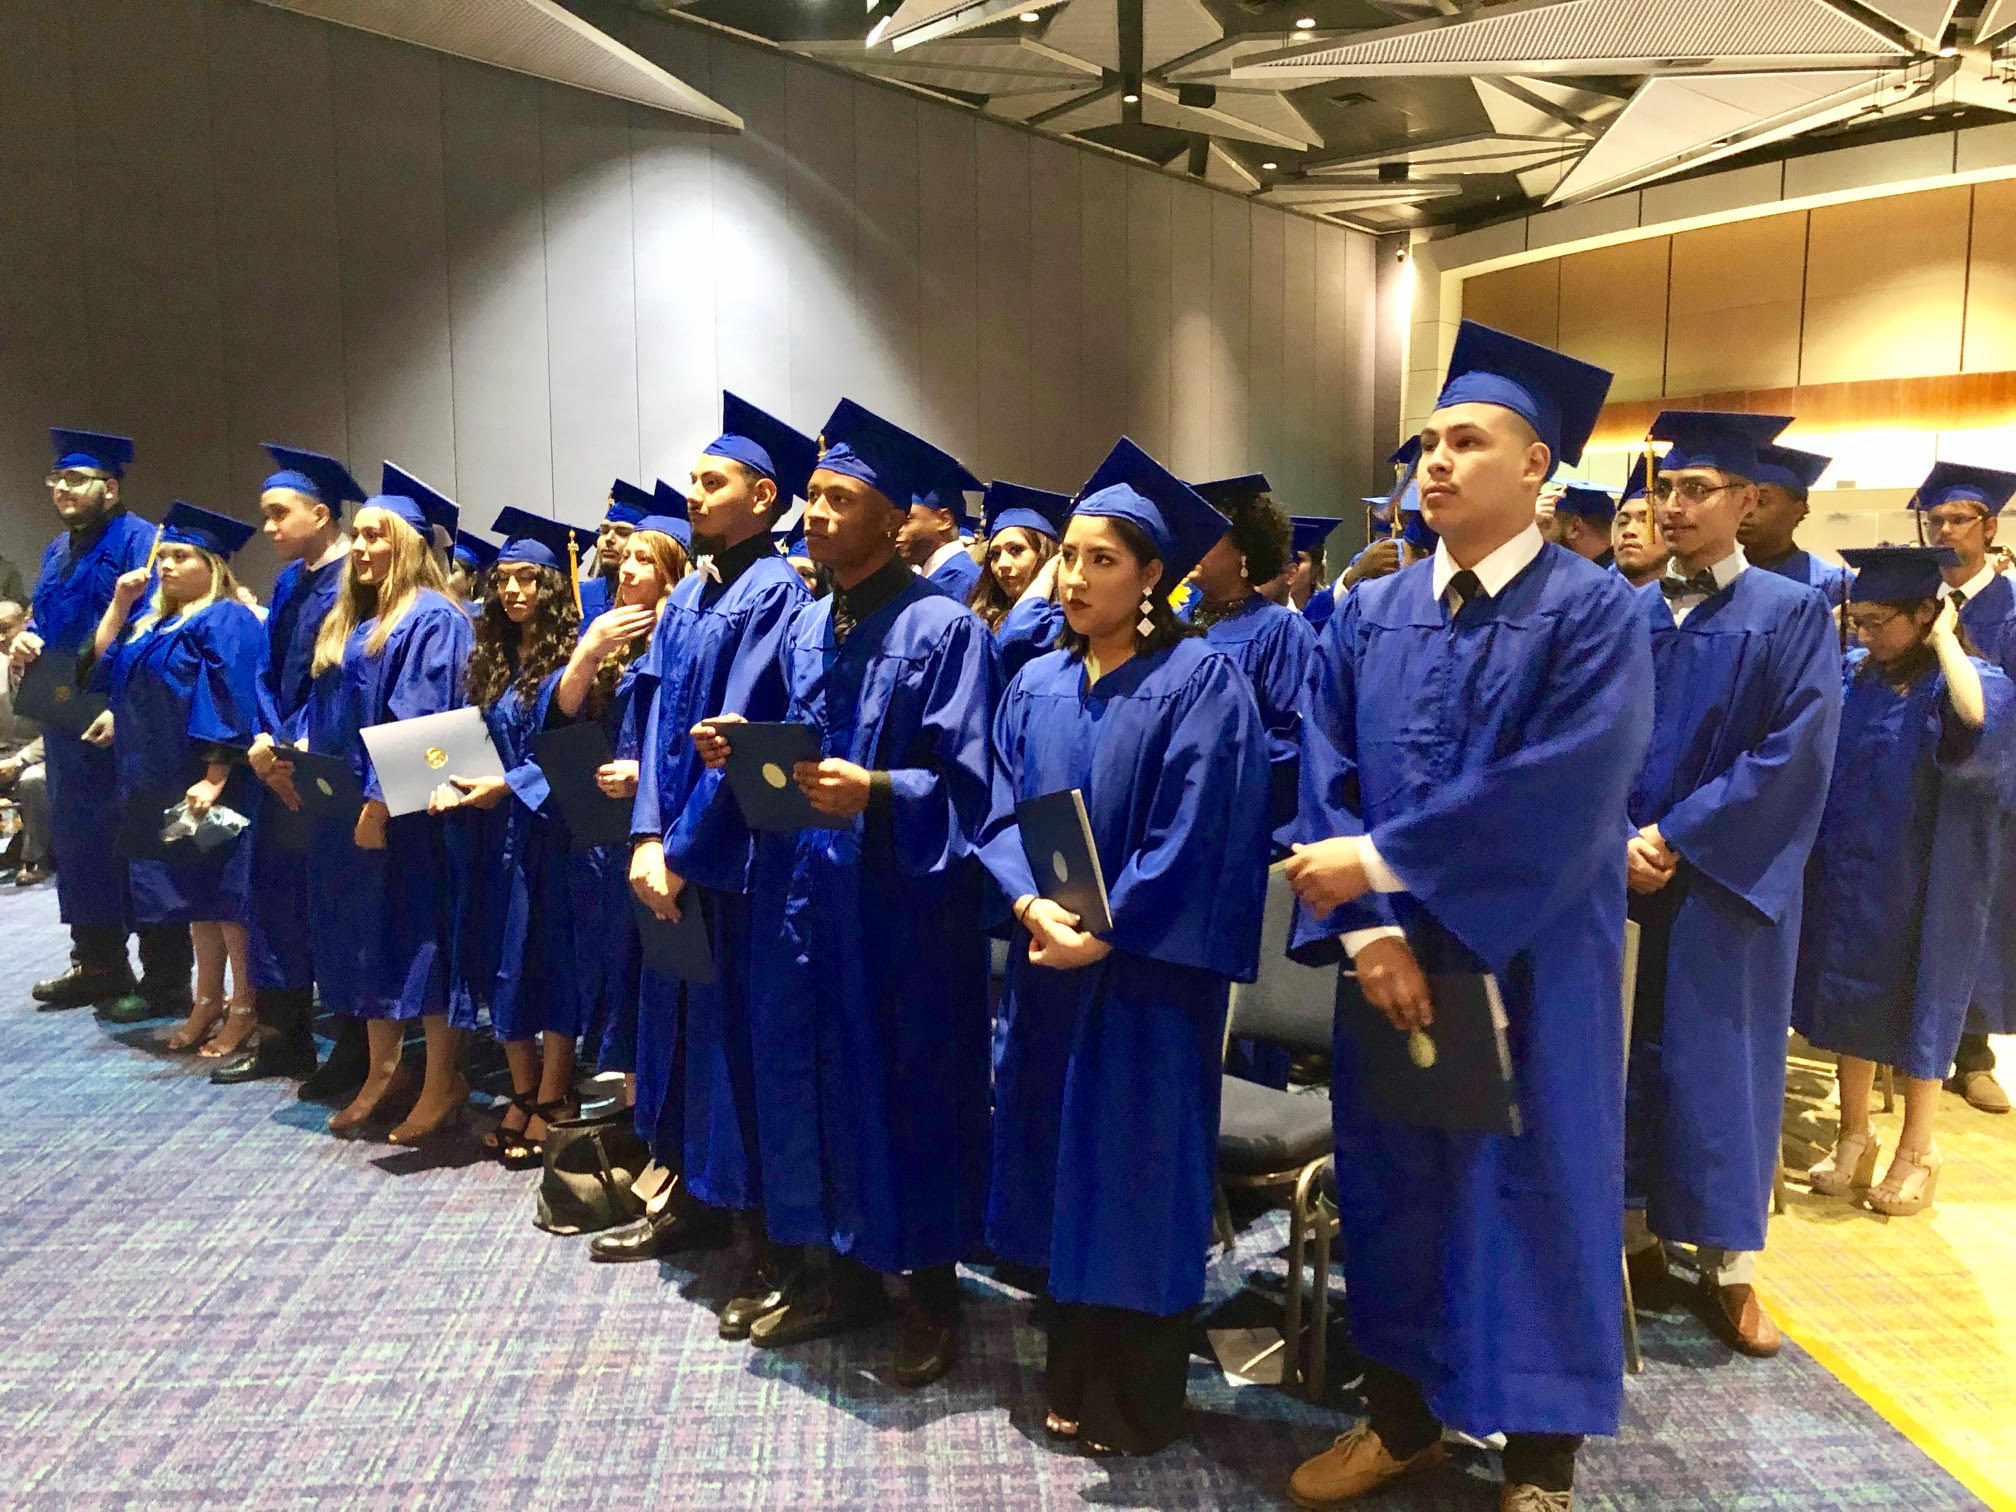 NBC DFW - Tell Me Something Good - Students Overcome Challenges to Earn Diploma